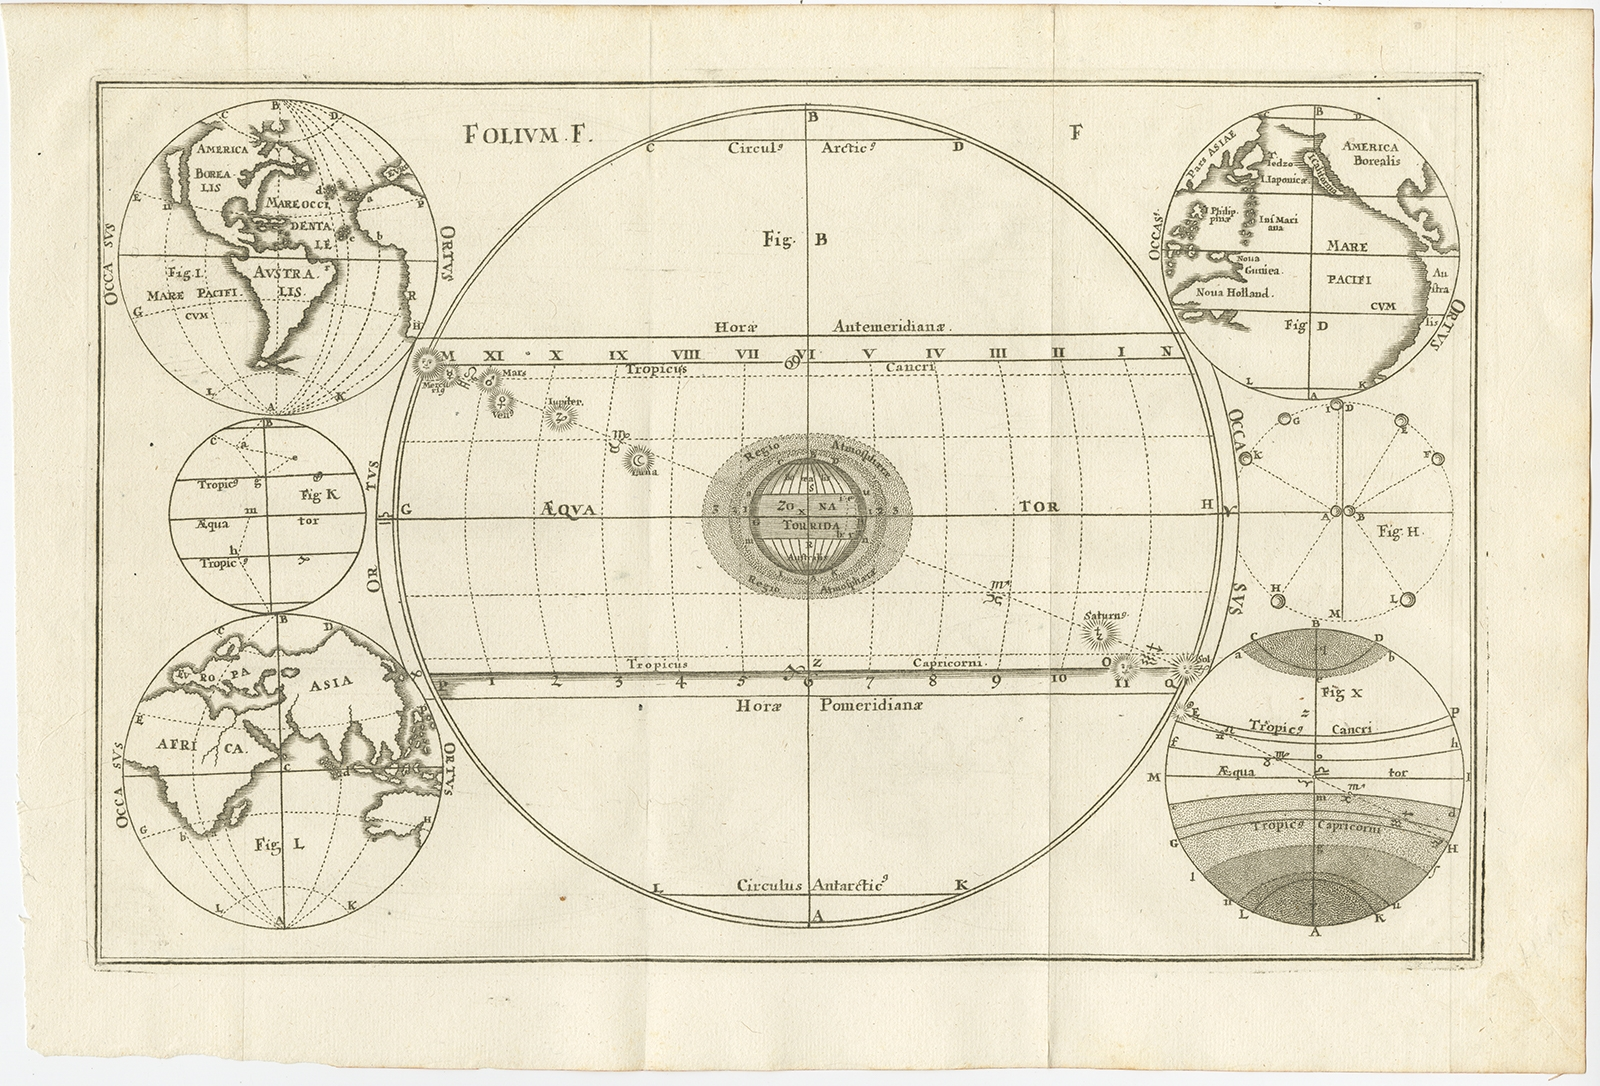 Untitled map of the world anonymous c1780 antique map of the world anonymous c1780 loading zoom gumiabroncs Images